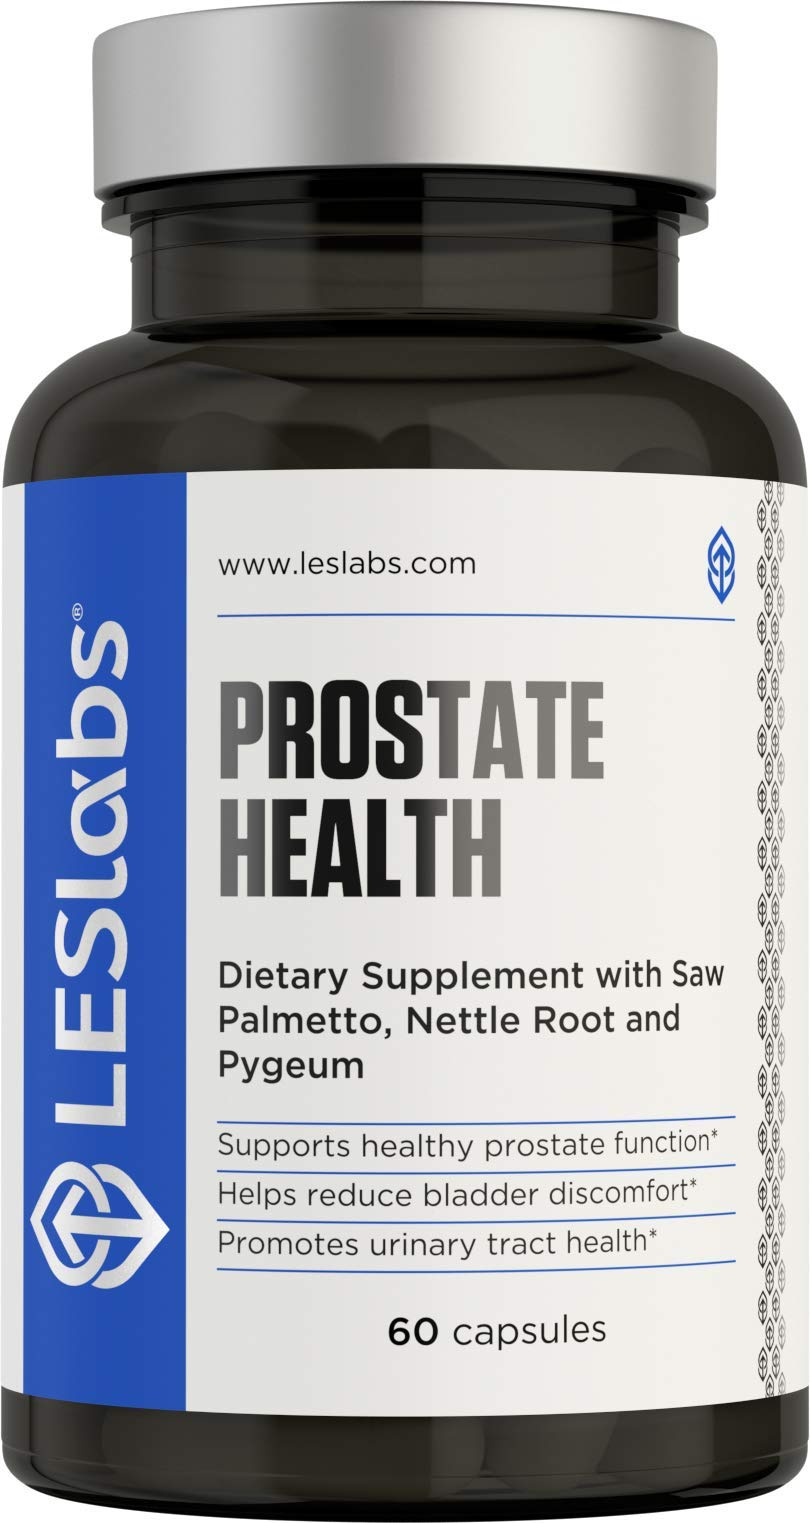 LES Labs Prostate Health, Prostate Supplement for Bladder Discomfort & Urinary Tract Health, Fewer Bathroom Visits with Saw Palmetto, Pygeum, Beta Sitosterol, 60 Capsules by LES Labs